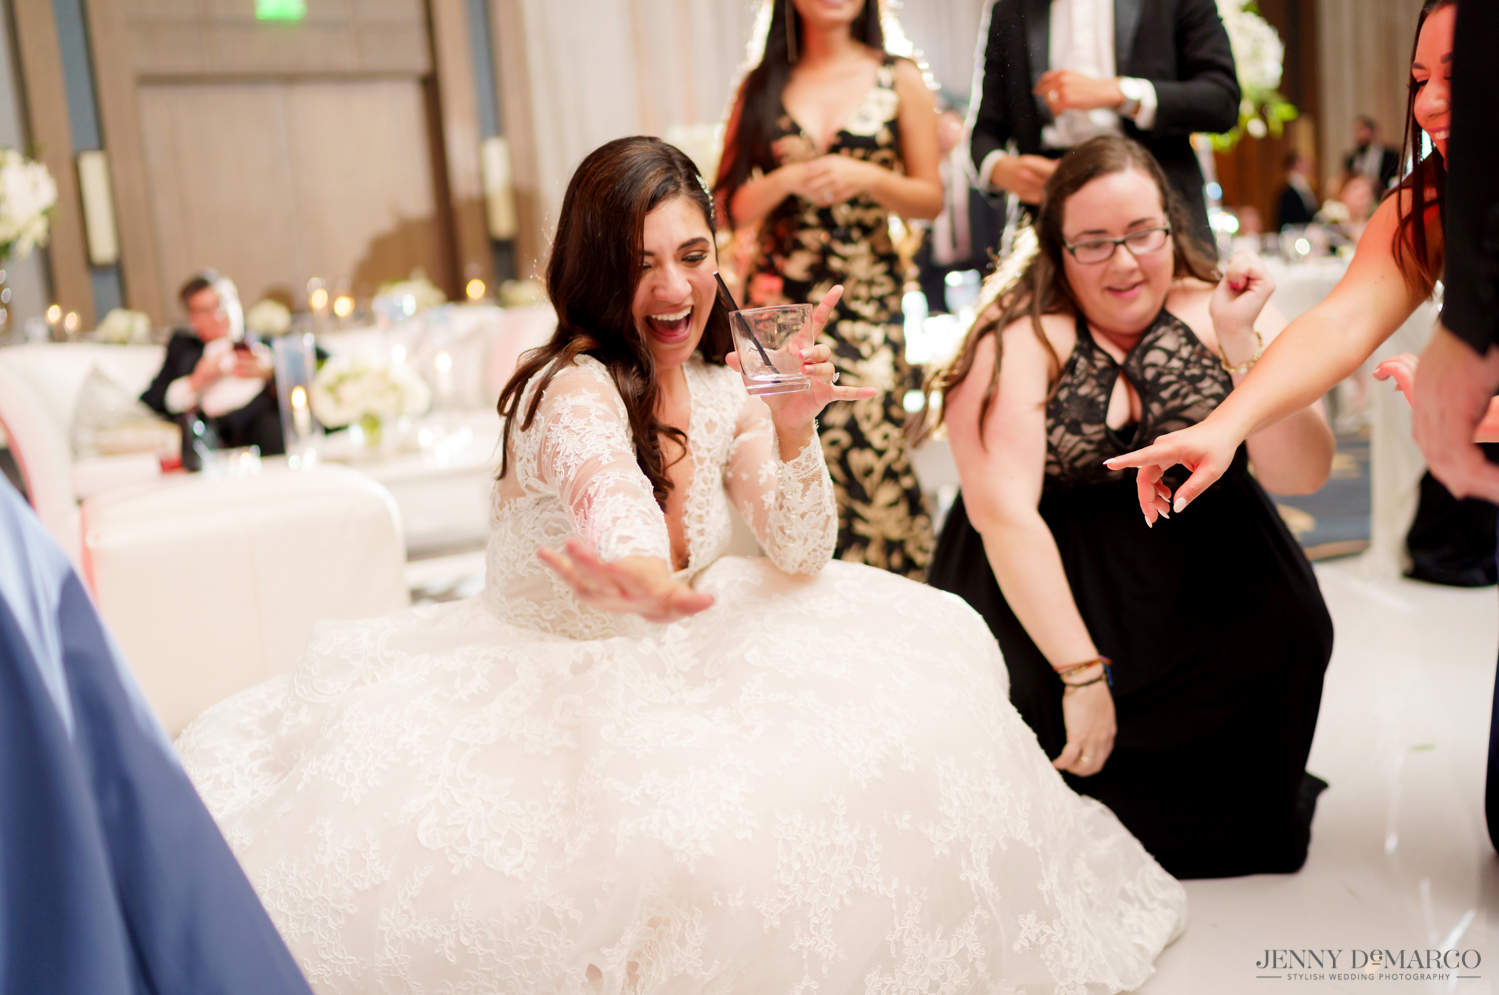 bride getting low on the dance floor with her friends